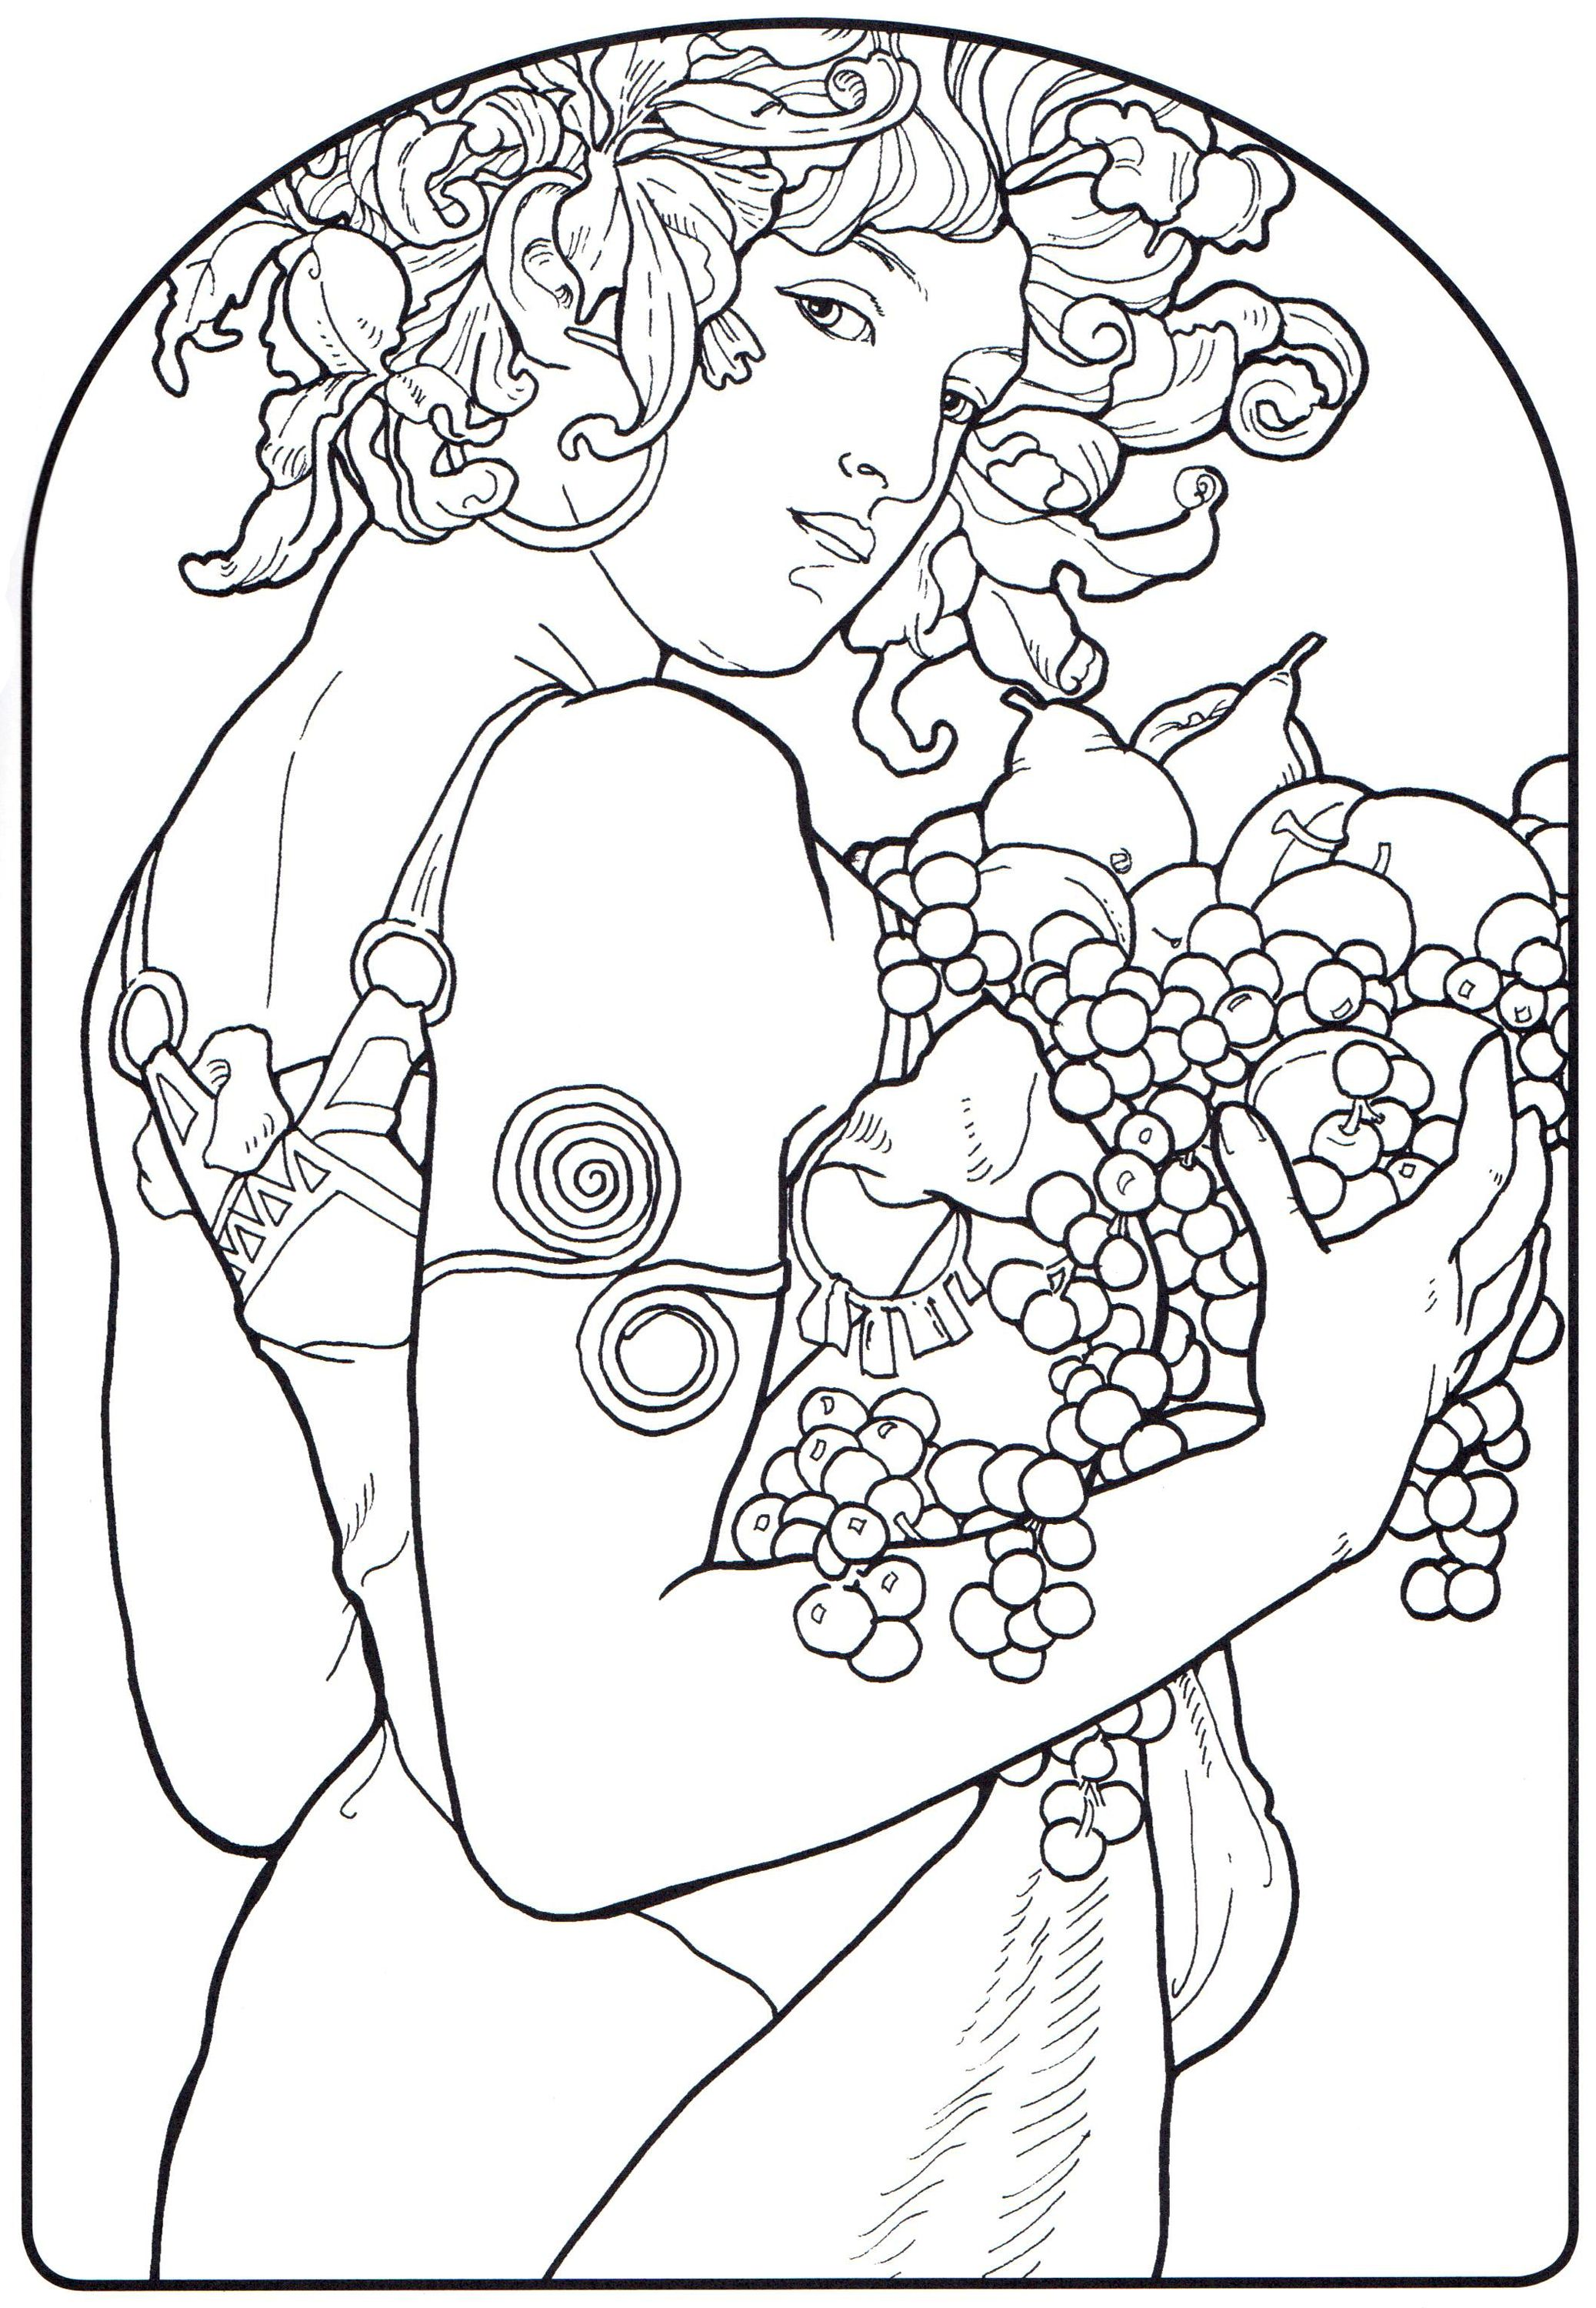 Le Fruits by Alphonse Mucha Part of the Alphonse Mucha coloring